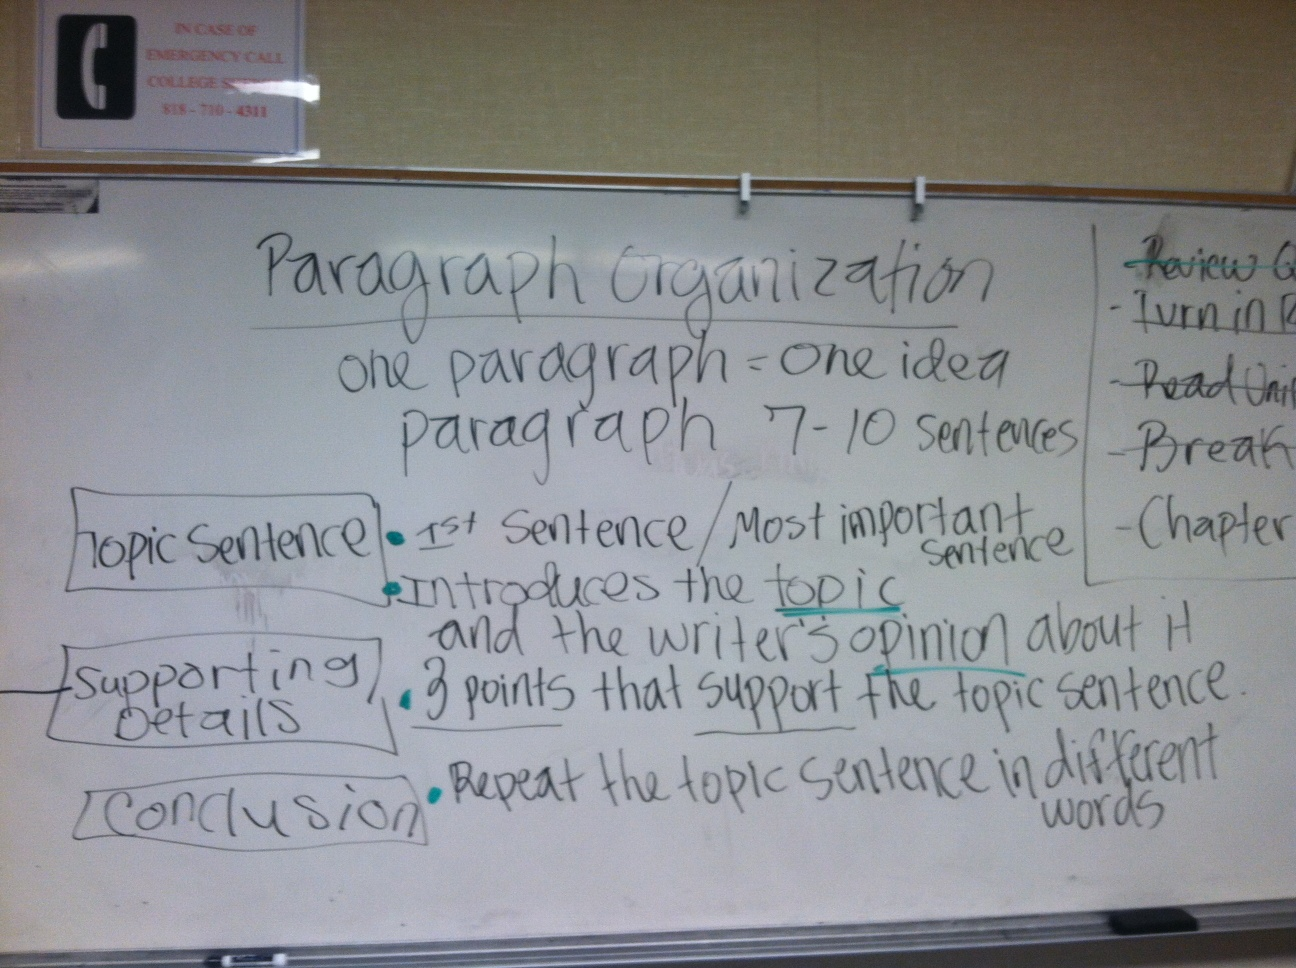 eng82 [licensed for non-commercial use only] / Paragraph Organization